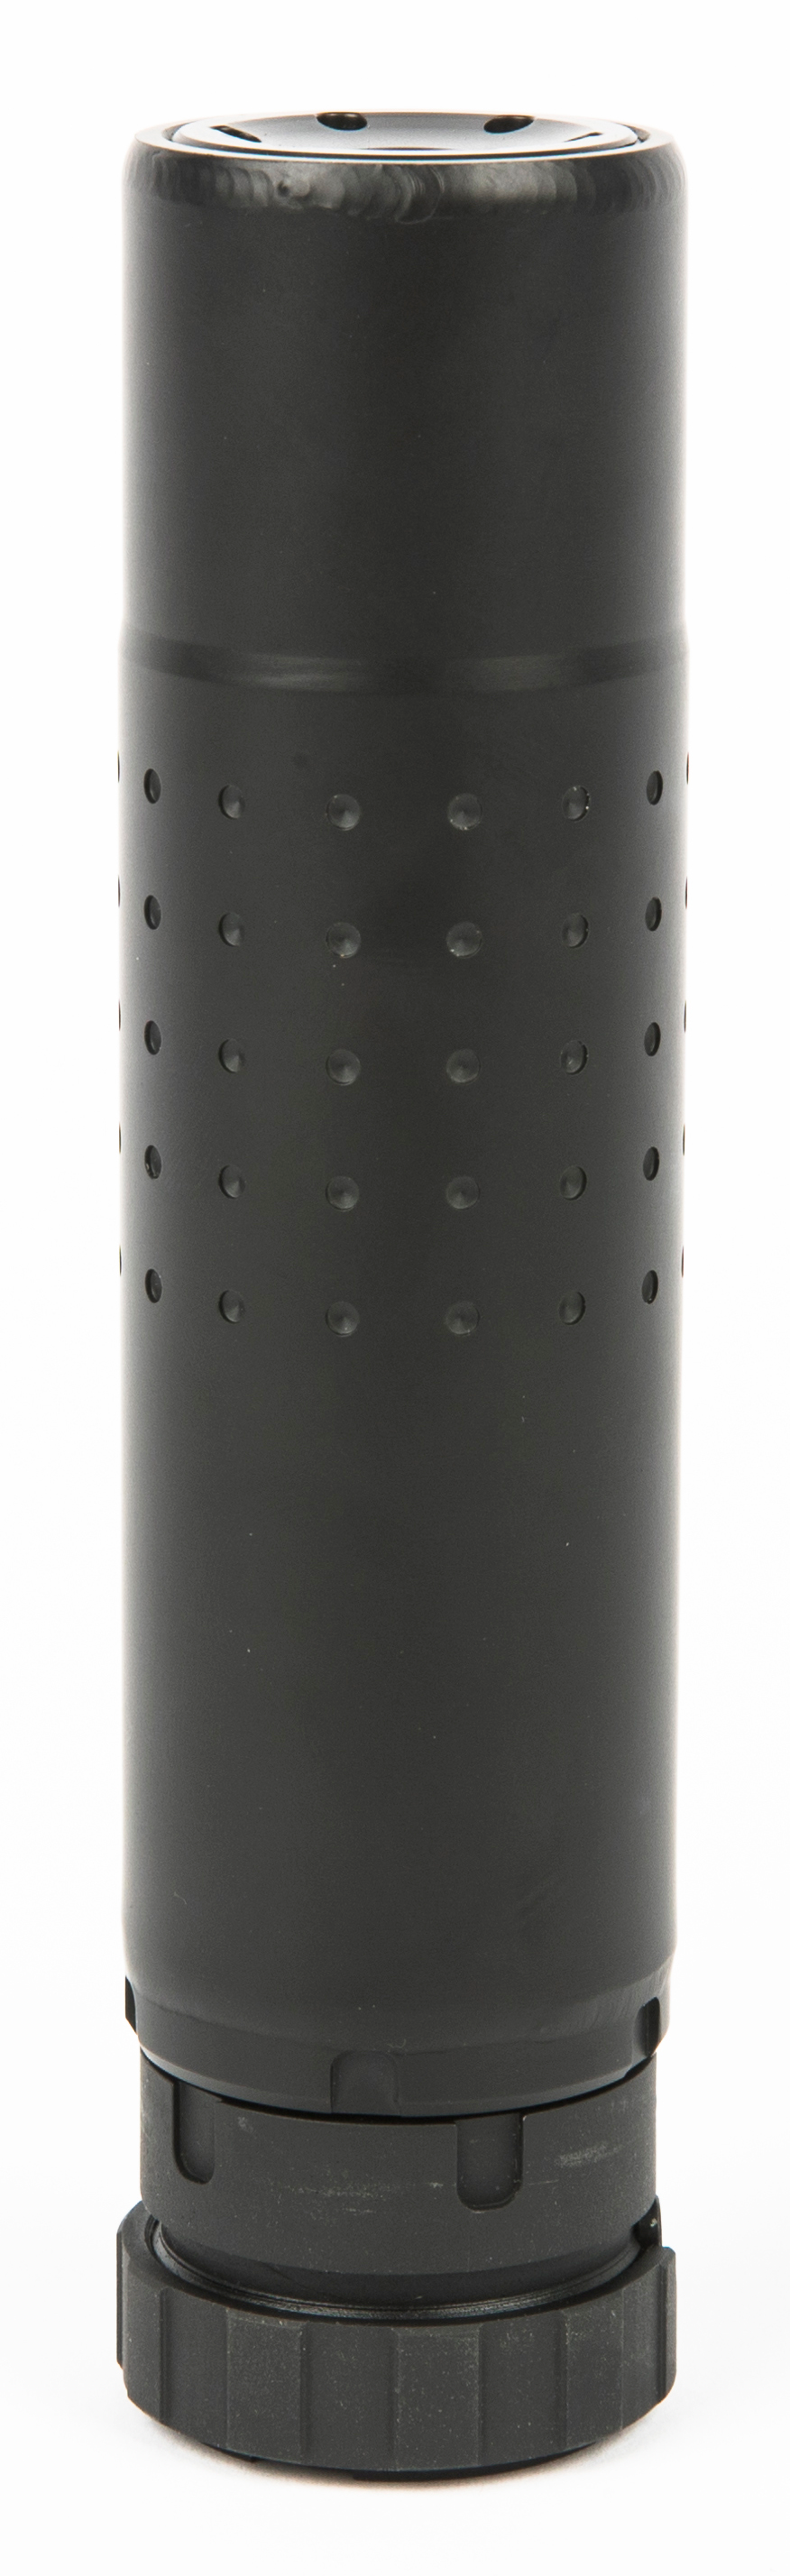 SilencerCo Chimera 300 Rifle Suppressor - 300 Win Mag - Quick-Detach - Black